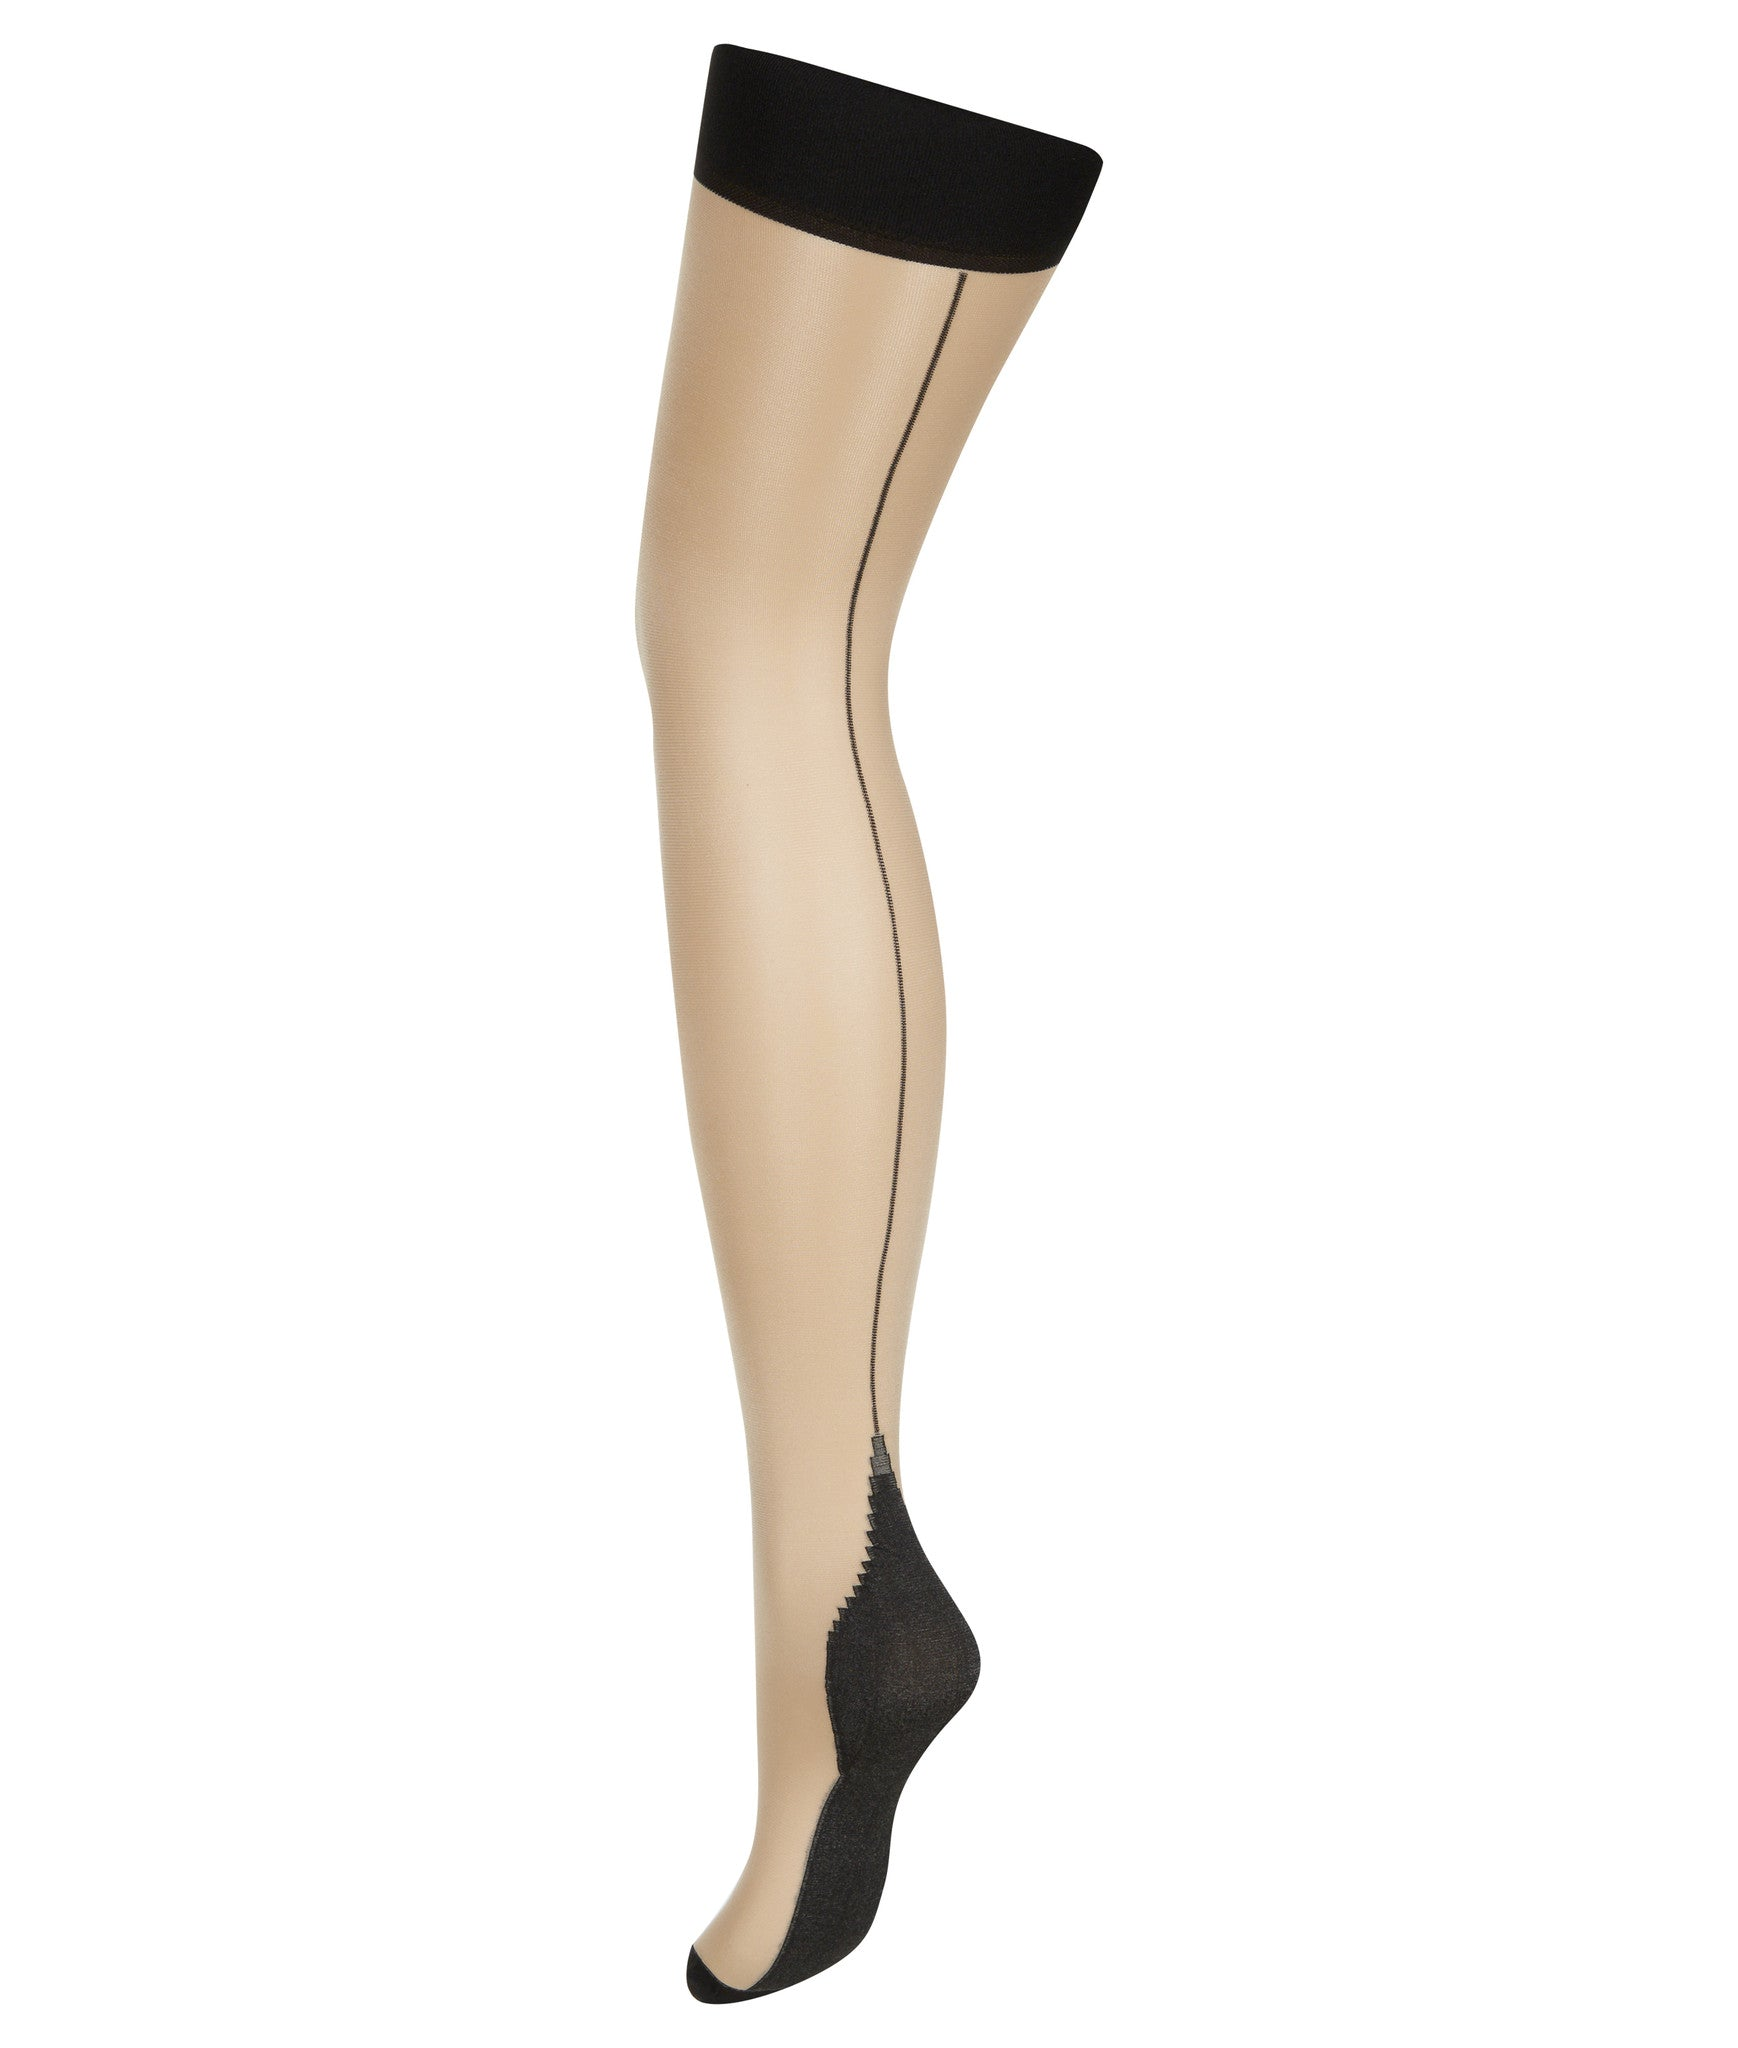 L'Agent by Agent Provocateur Seam & Heel Stretch Stocking - Knickers & Pearls Boutique - 1